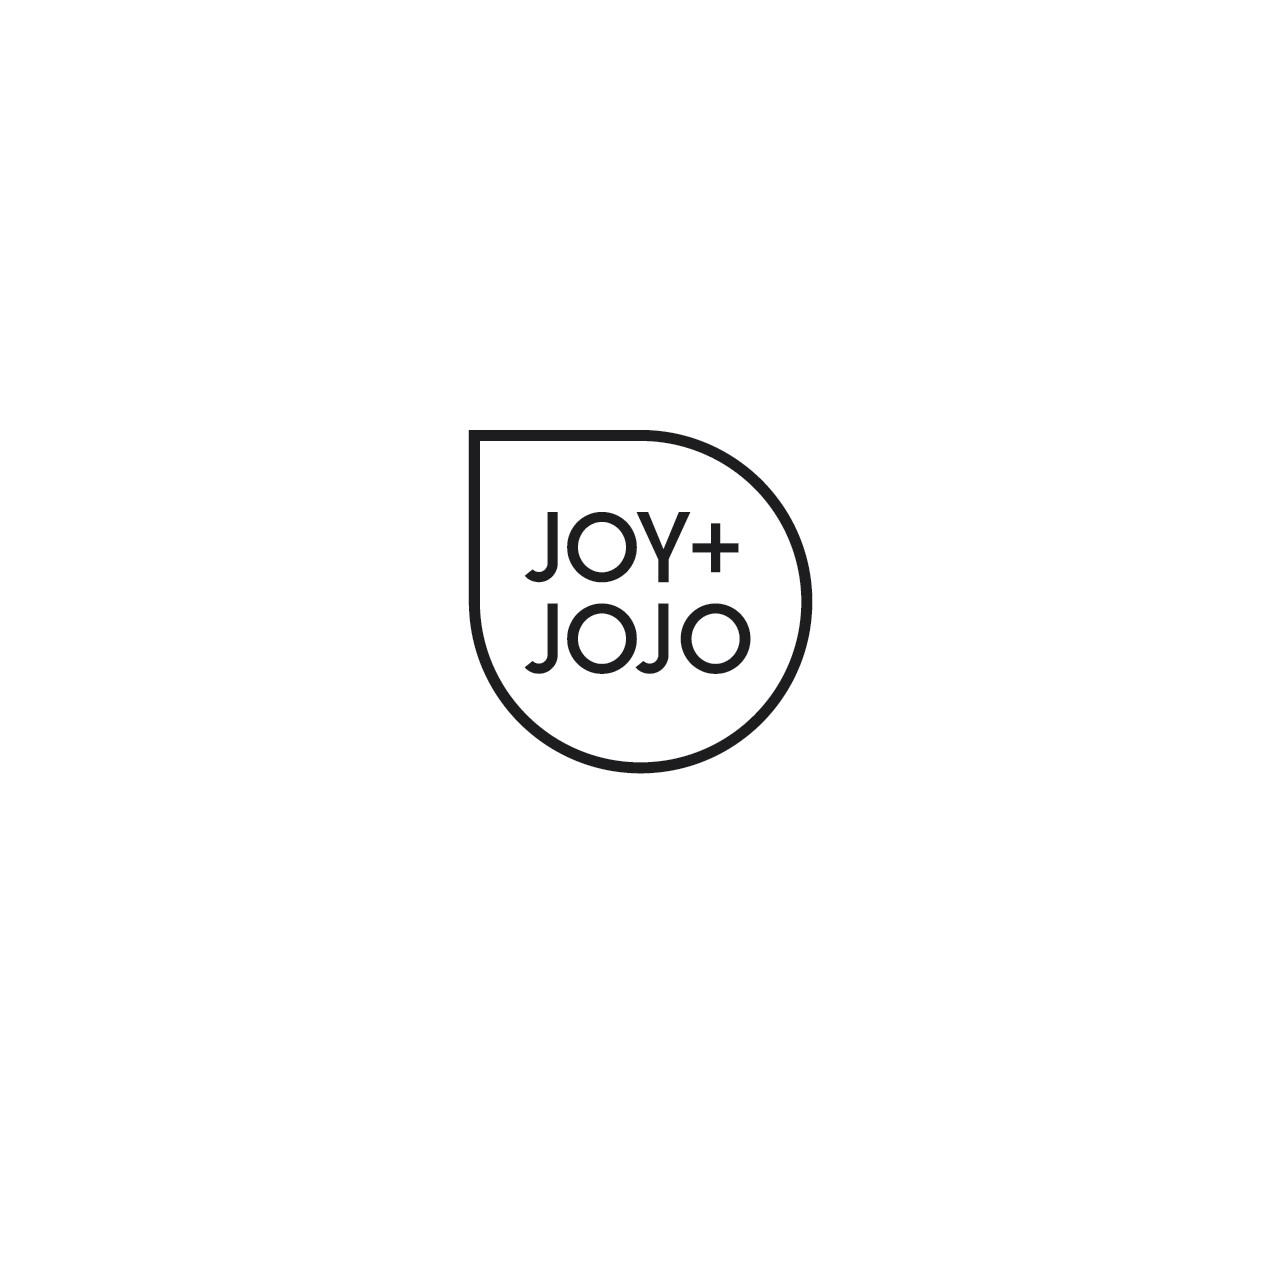 Help us brand Joy + JoJo - fostering a culture of positivity.